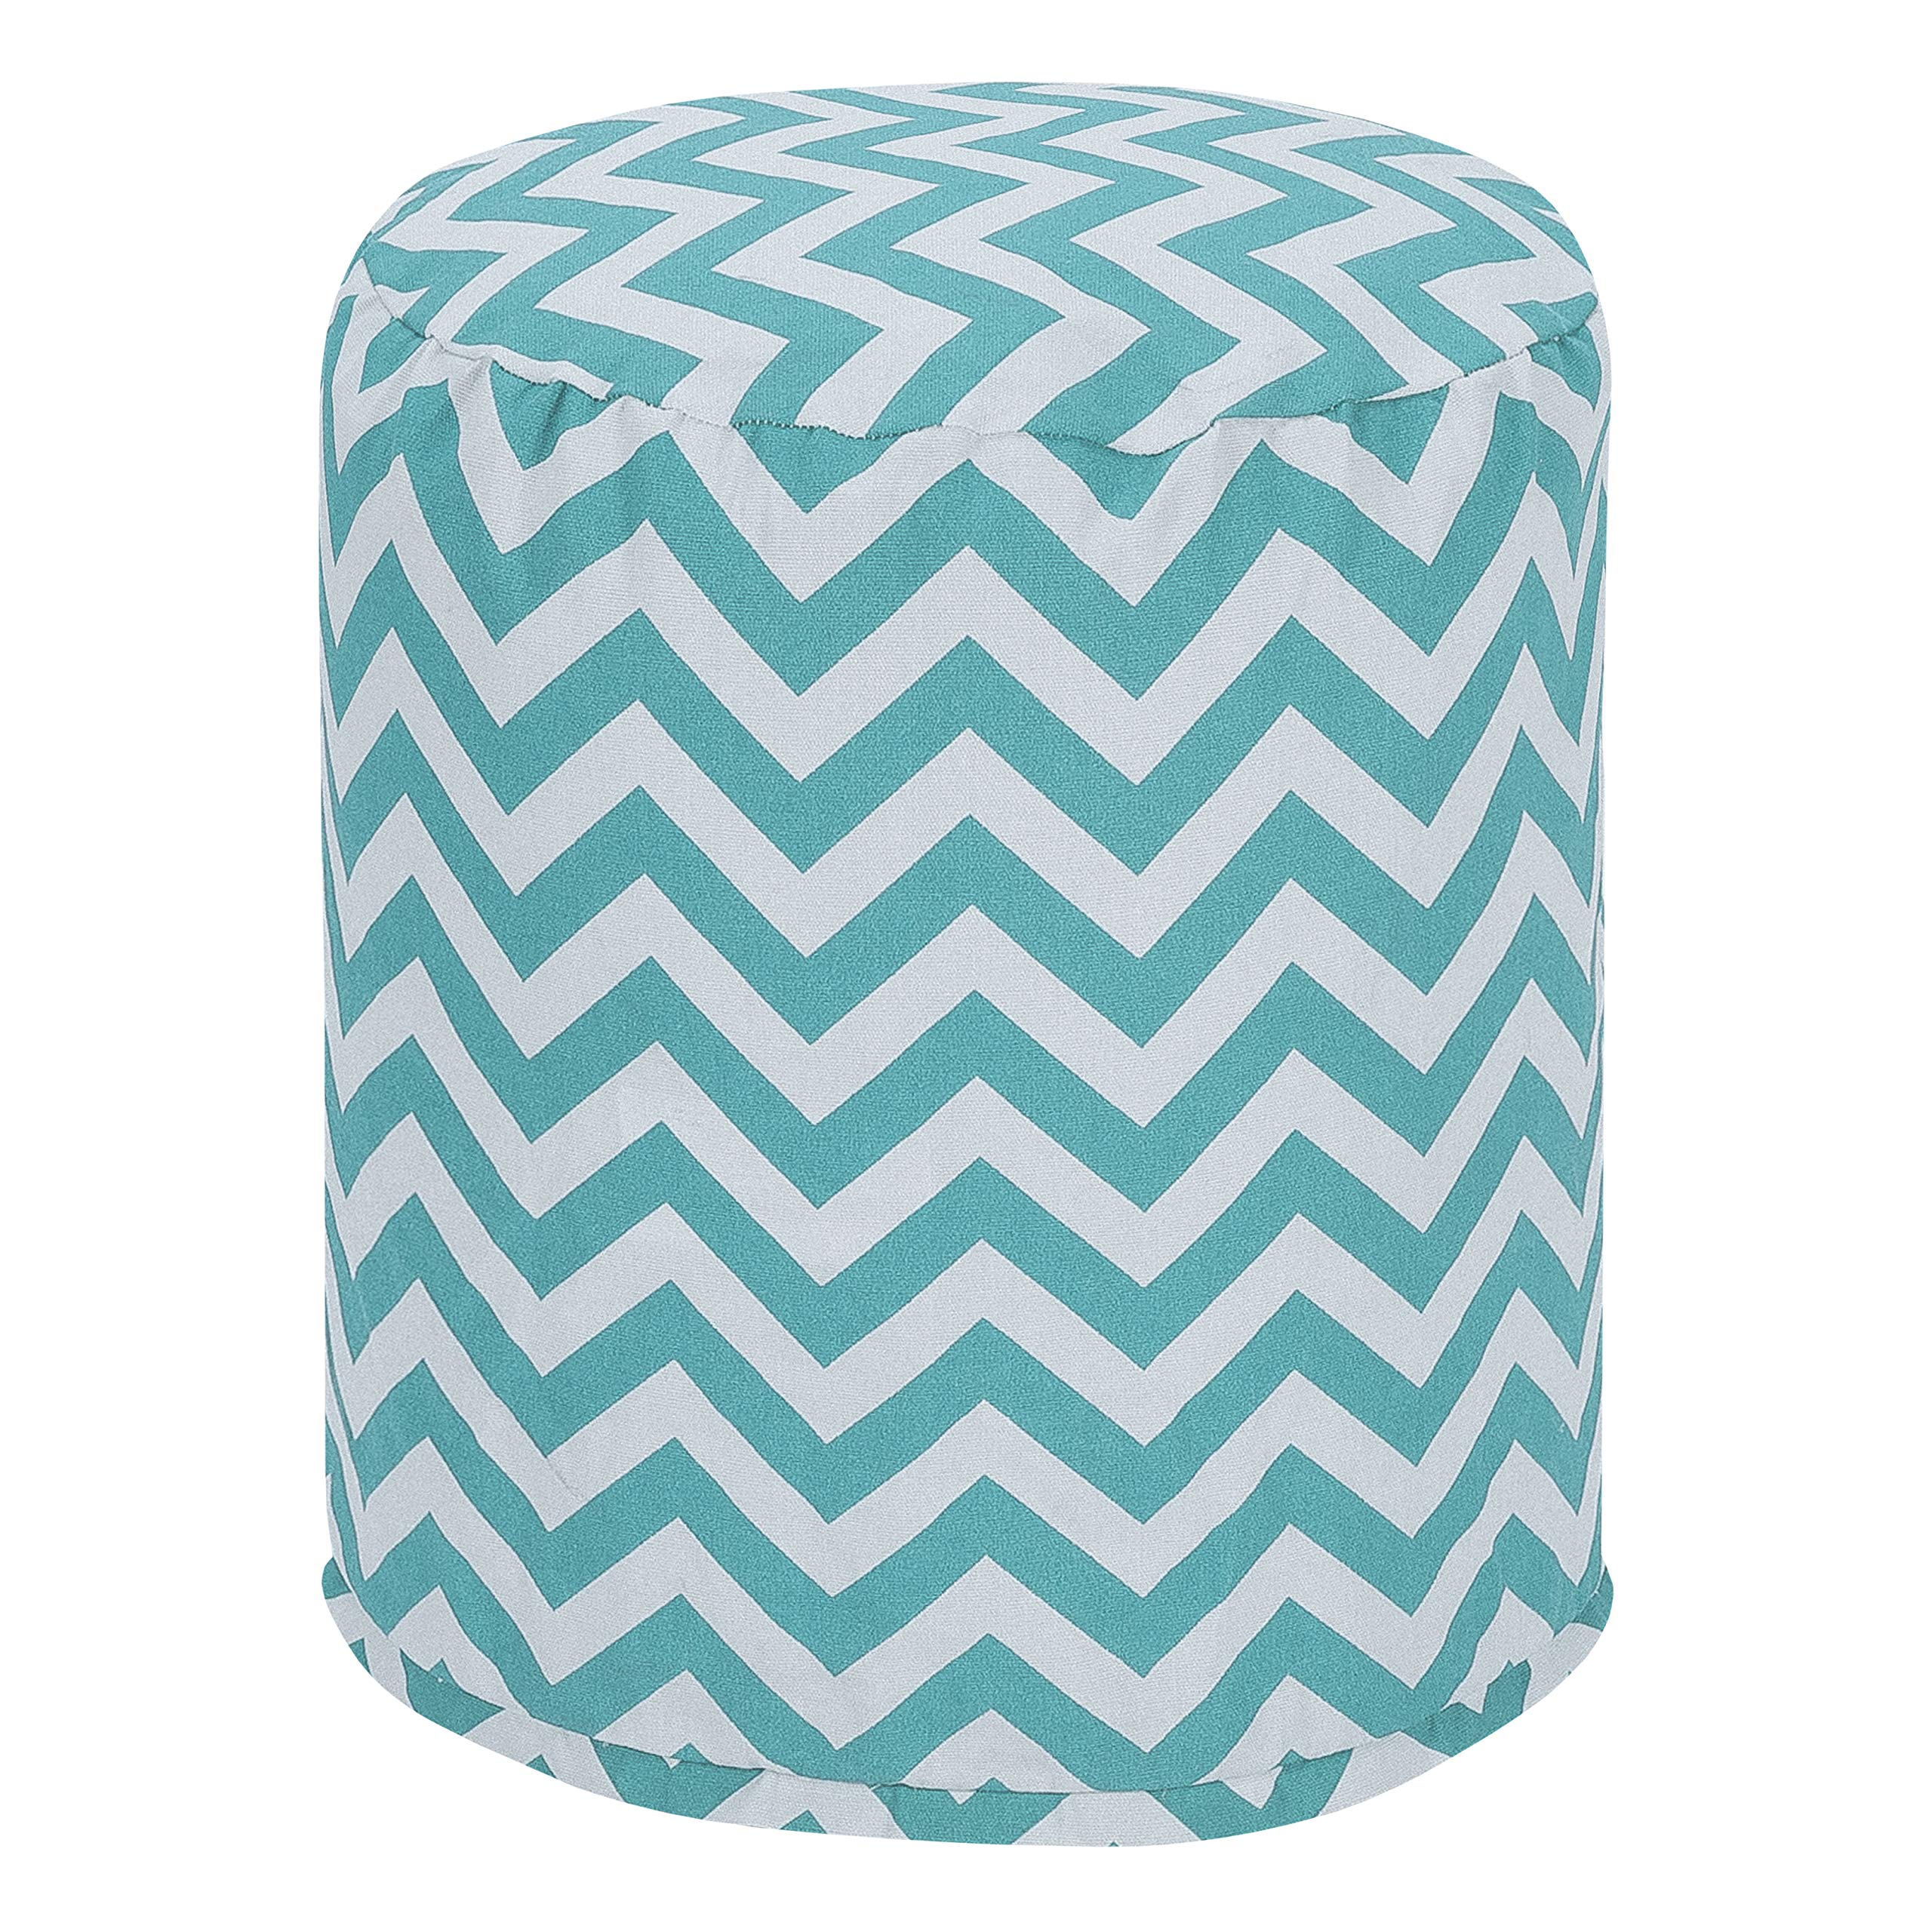 Majestic Home Goods Teal Chevron Indoor/Outdoor Bean Bag Ottoman Pouf 16'' L x 16'' W x 17'' H by Majestic Home Goods (Image #1)